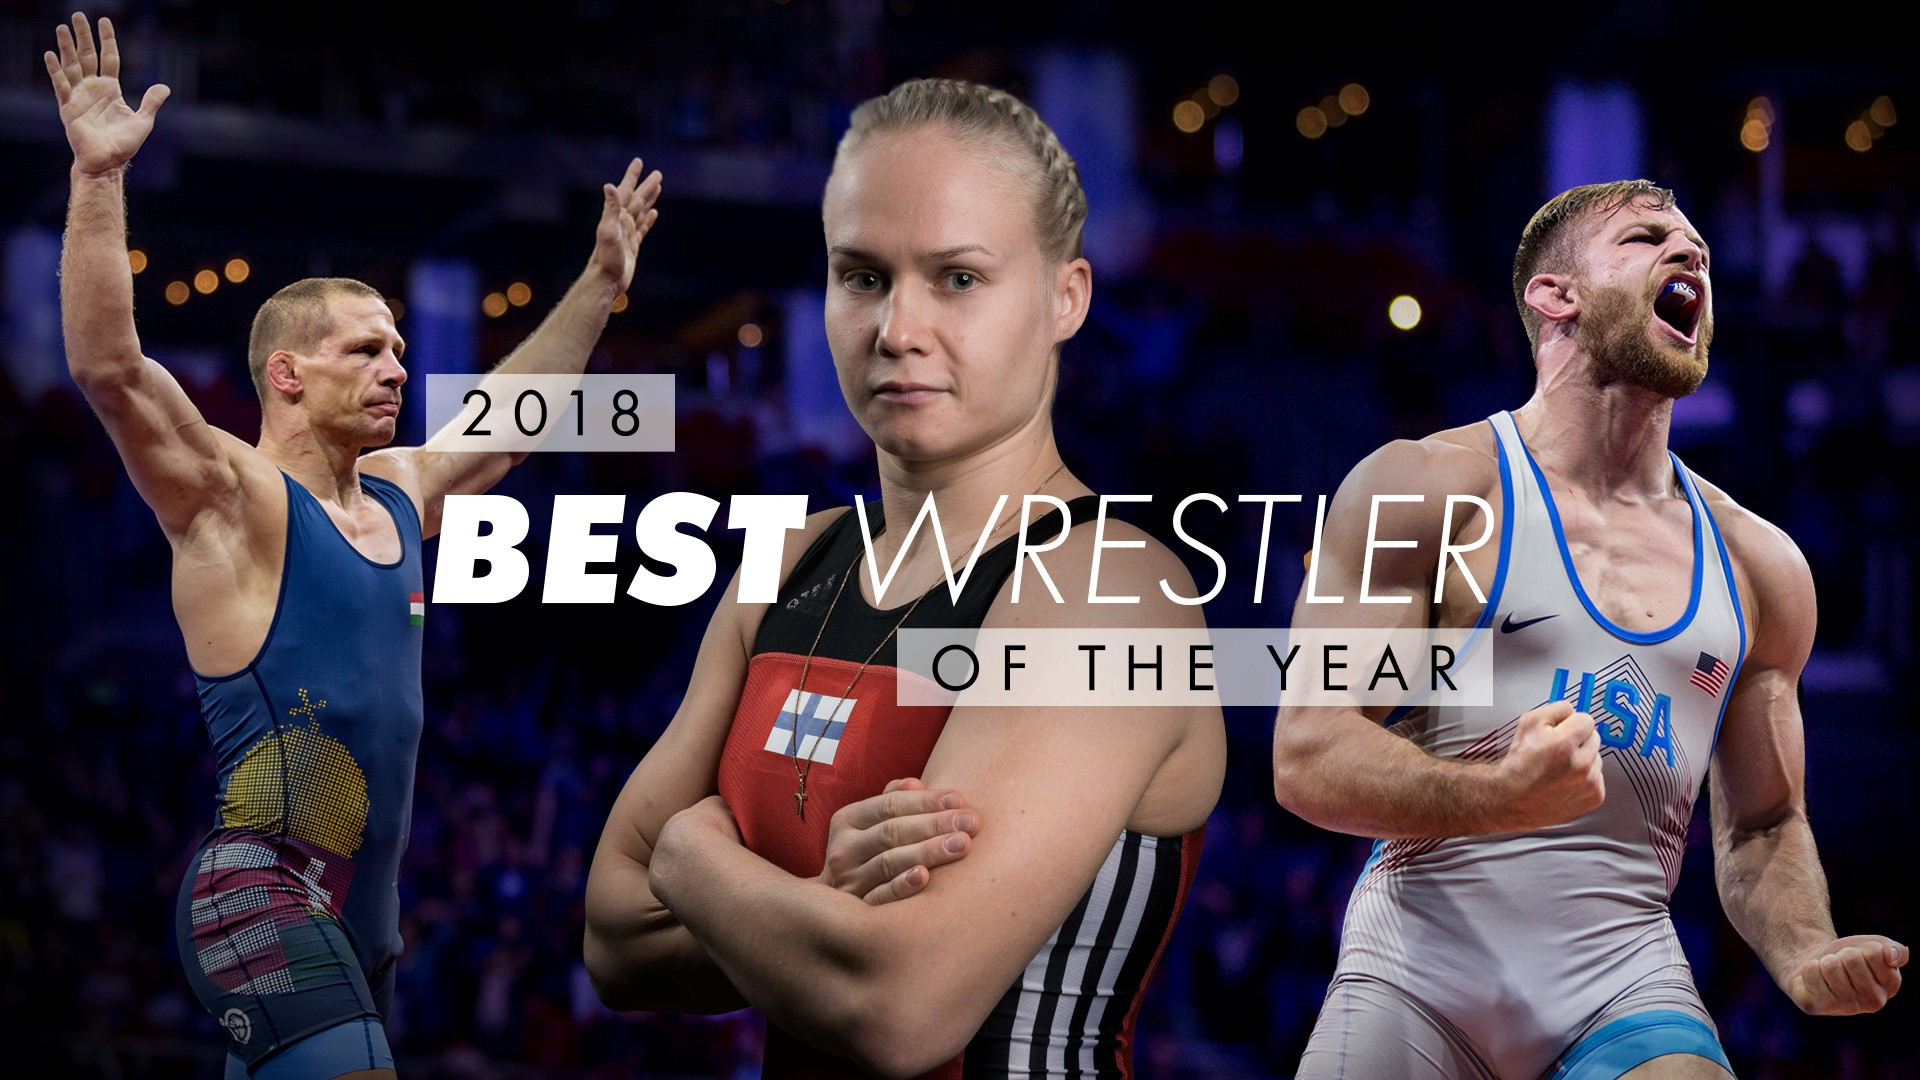 UWW name Taylor, Olli and Bacsi as 2018 wrestlers of the year